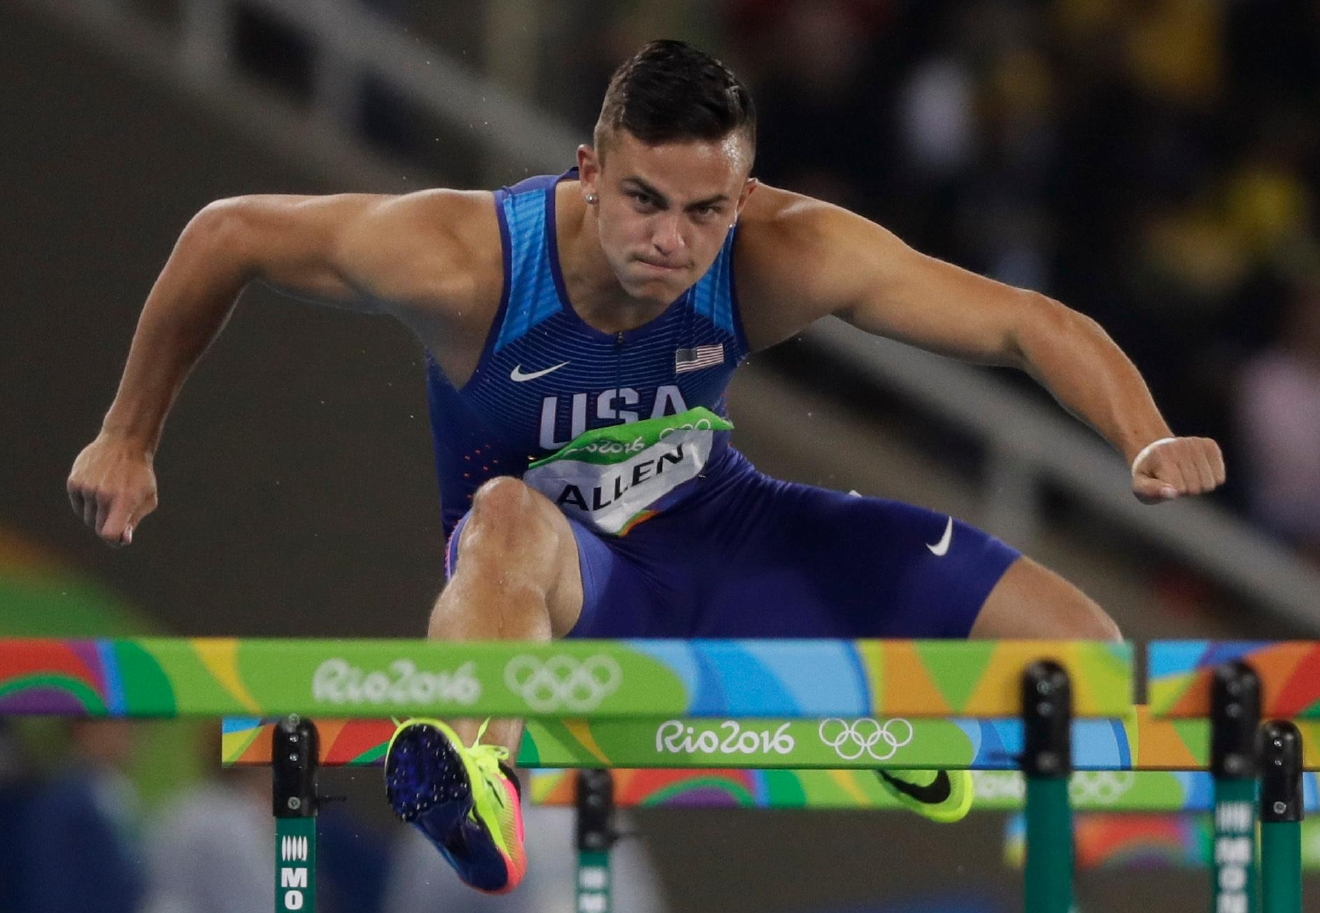 United States' Devon Allen competes in a men's 110-meter hurdles heat during the athletics competitions of the 2016 Summer Olympics at the Olympic stadium in Rio de Janeiro, Brazil, Monday, Aug. 15, 2016. (AP Photo/David J. Phillip)